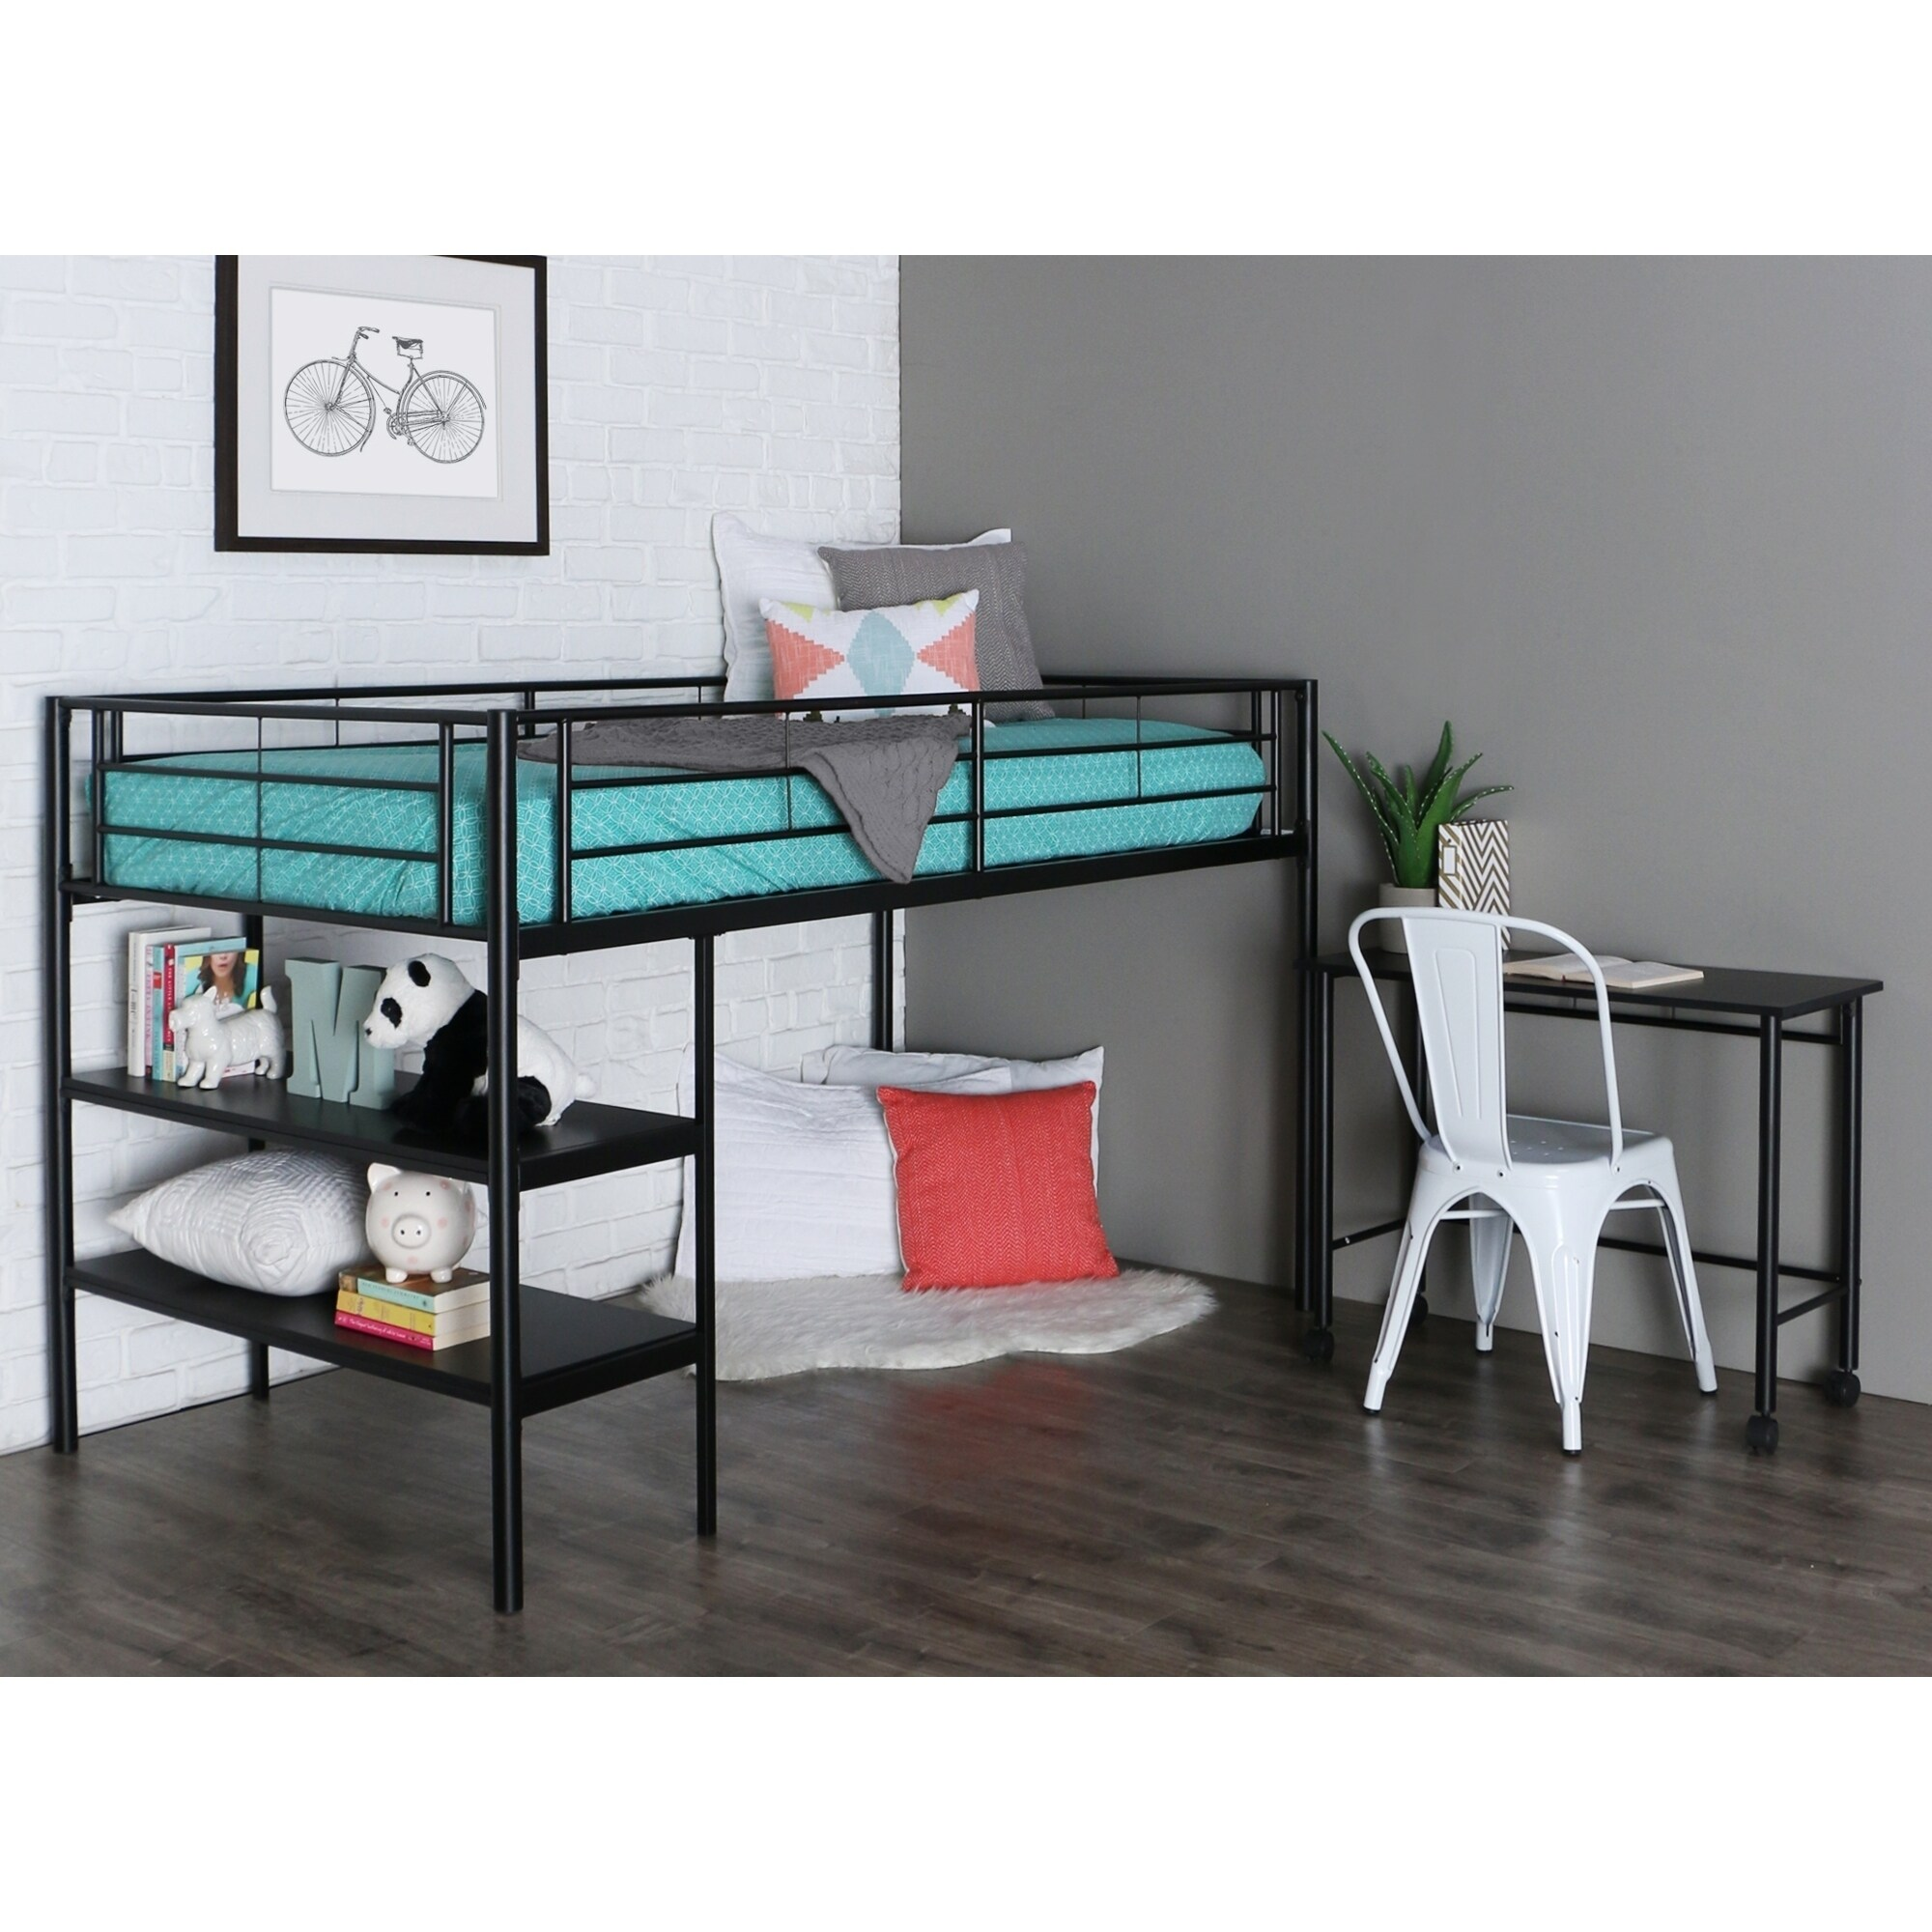 Walker Edison Black Twin Low Loft Bed with Desk and Shelv...